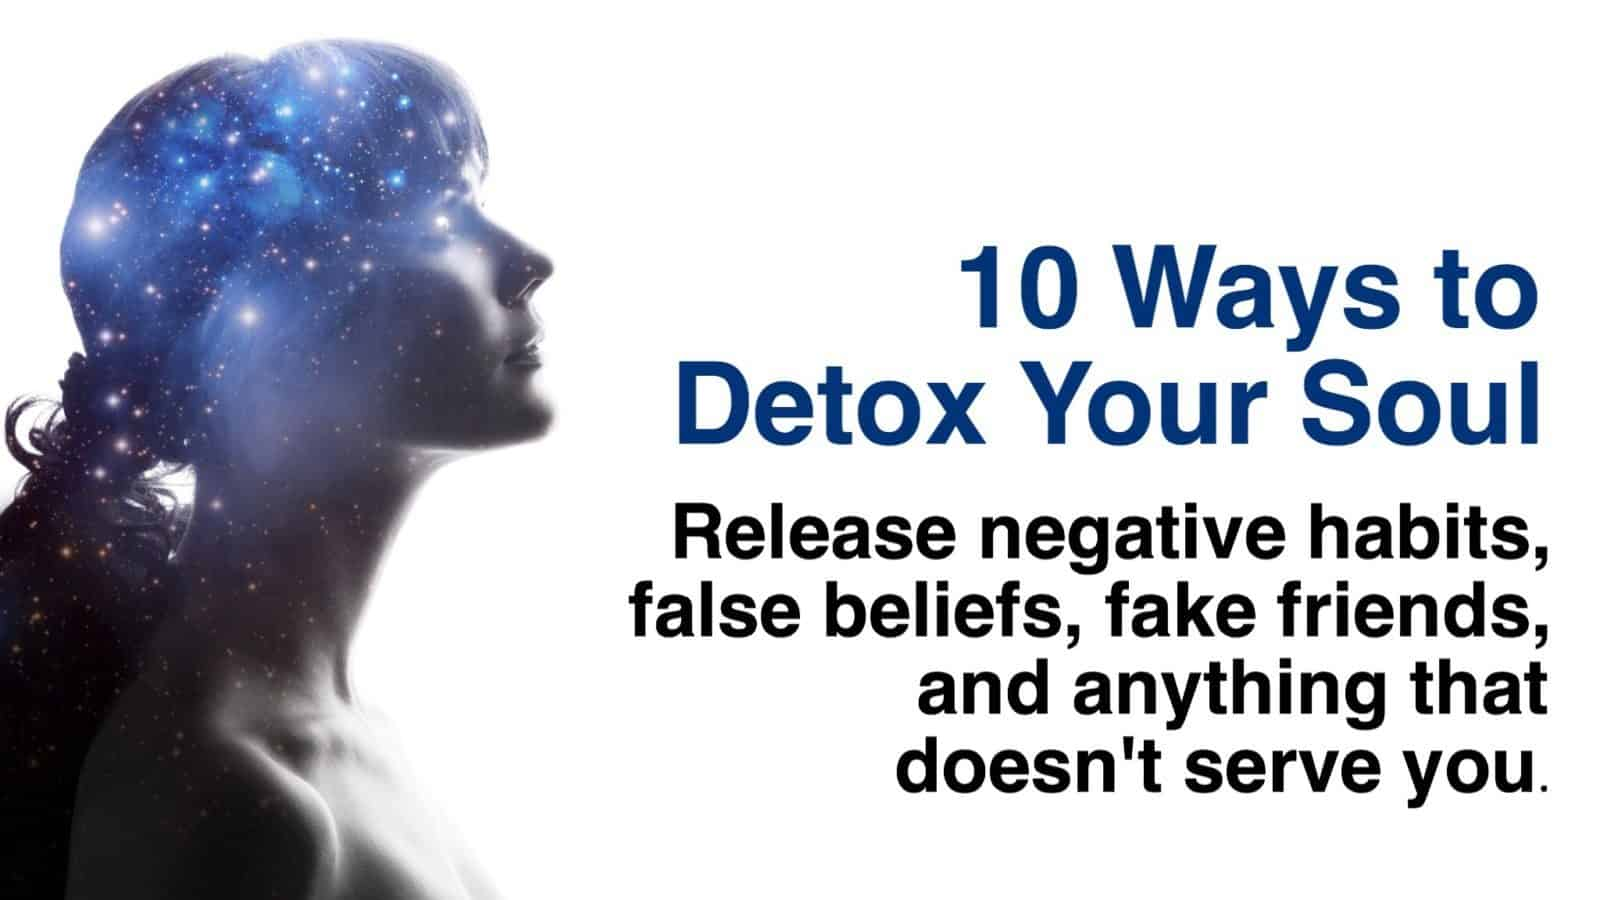 10 Ways to Detox Your Soul | www powerofpositivity com